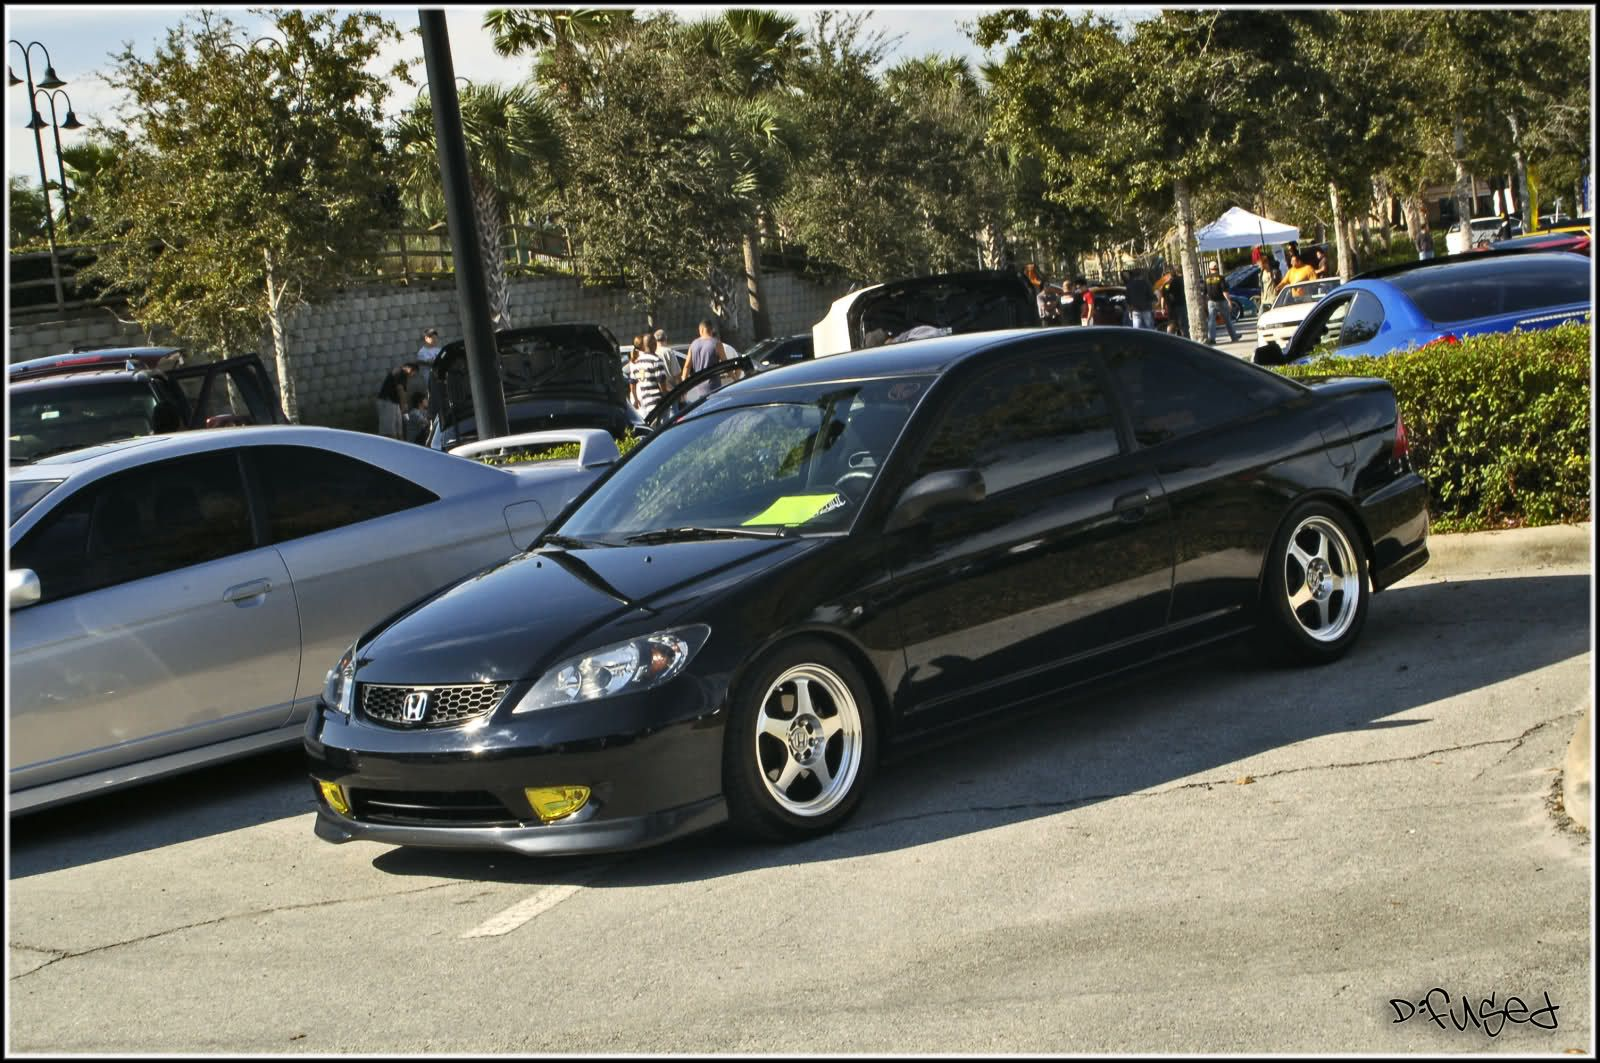 Clean Black 04 05 Civic I Love These Rims Too They Look Great On 96 Civics